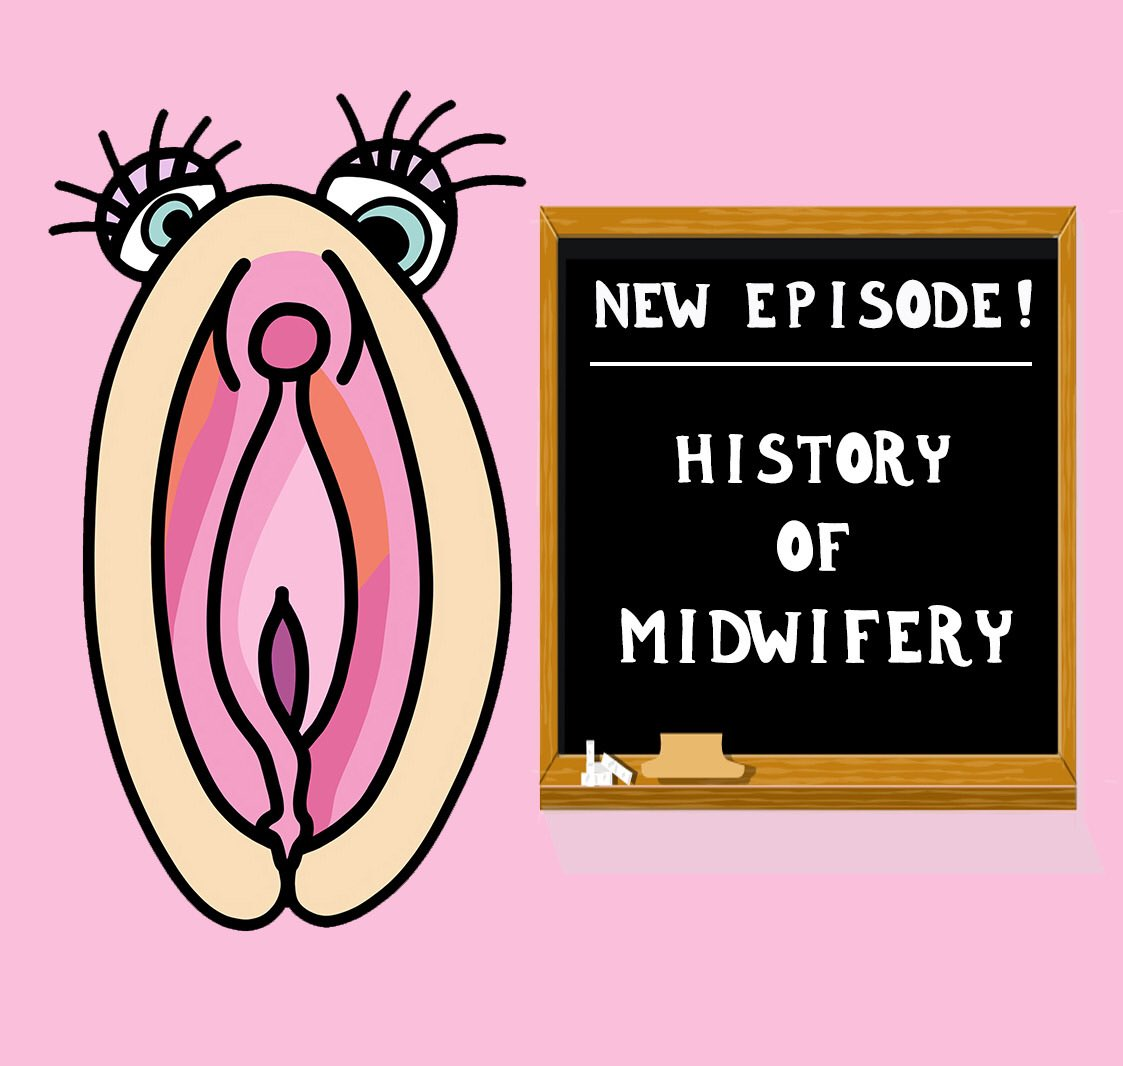 NEW EPISODE This time we talk about the history of midwifery here in the U.S. As with so much of our history, there are a lot of race, class and gender components to this story. Want to know more? LINK IN BIOAnd be sure to check out our episode notes for some more resources. pic.twitter.com/aEzf4yJgCc